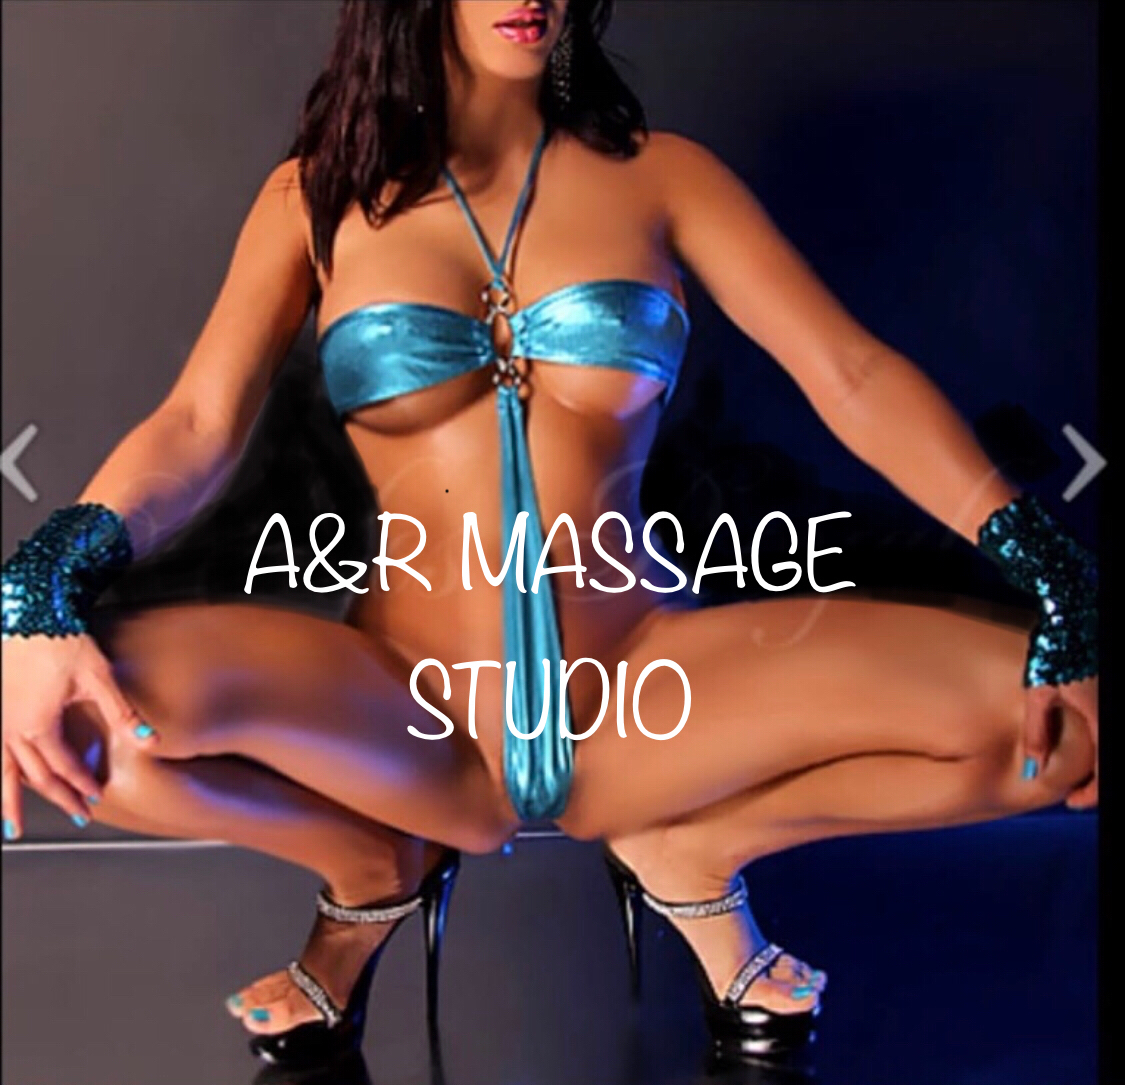 "💜💋Addiction warning!💋 Hottest girls in town!💋 Awaits For You!💋 Satisfy Your Deepest Desires!💋💜 ""A&R Massage Studio "" 💋WHY WAIT? 💜 Call 416-760-8555💋💜"